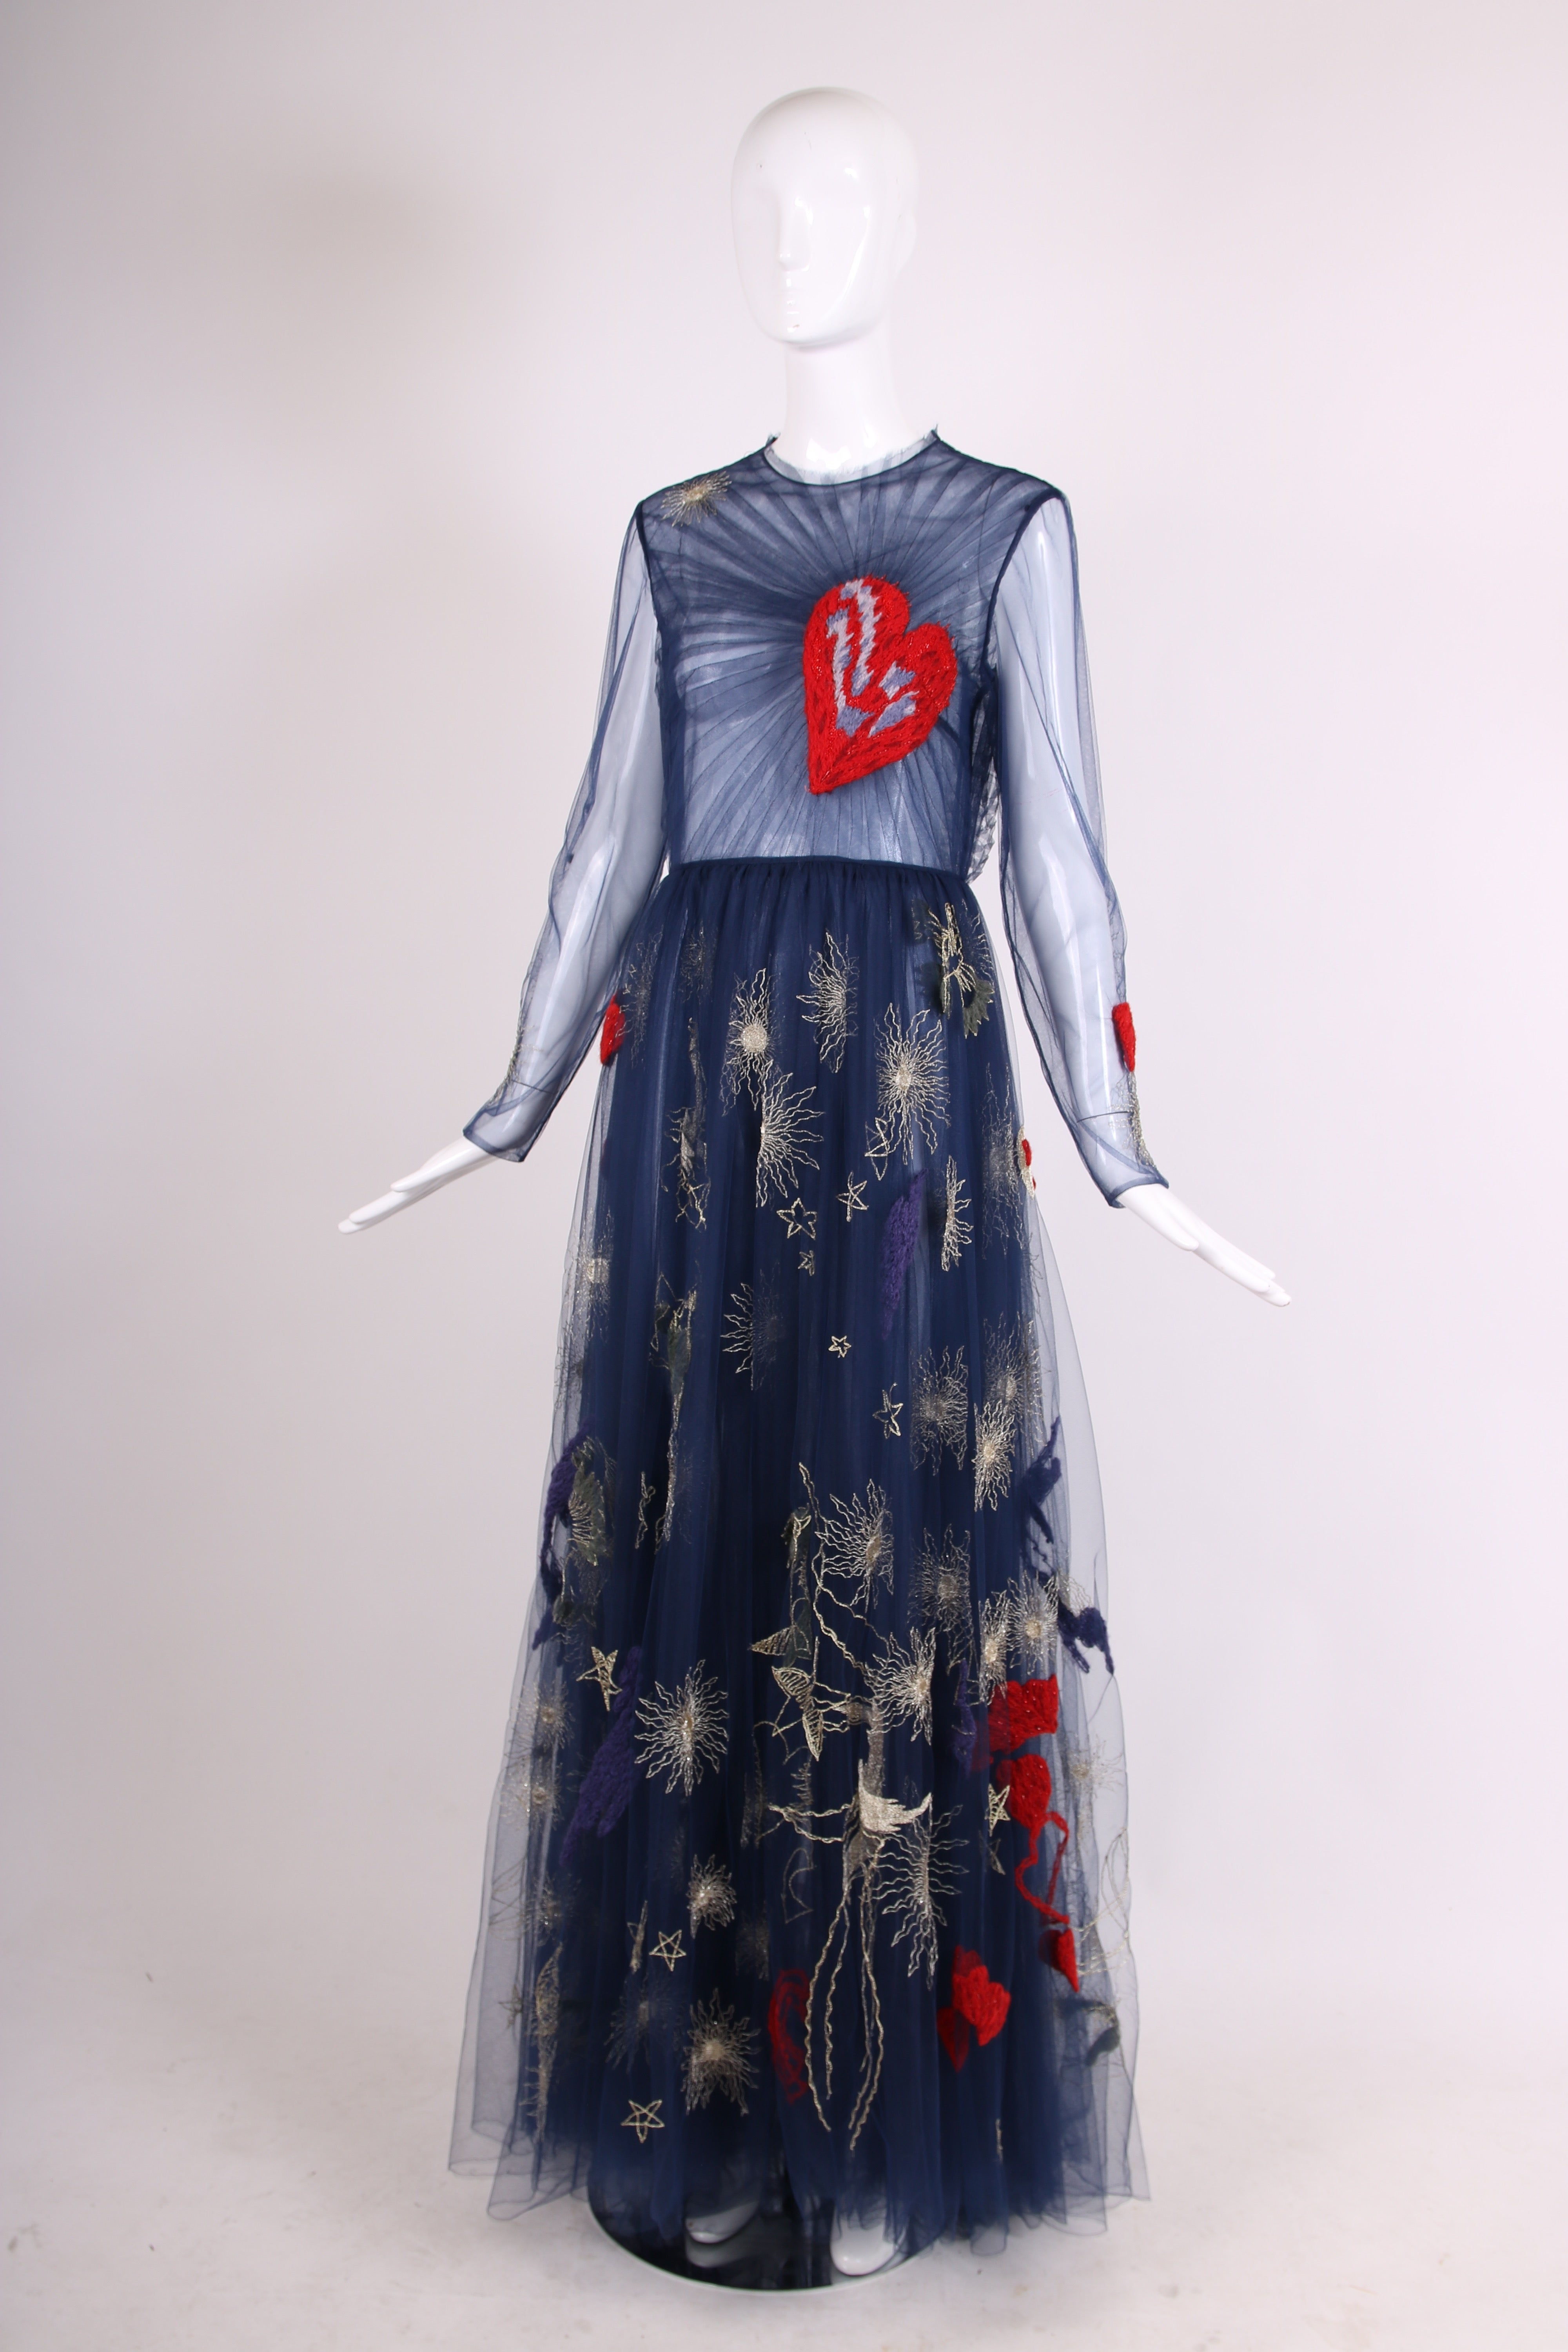 280d8c42a7dbb 2015 Valentino Embroidered Tulle Heart Gown at 1stdibs